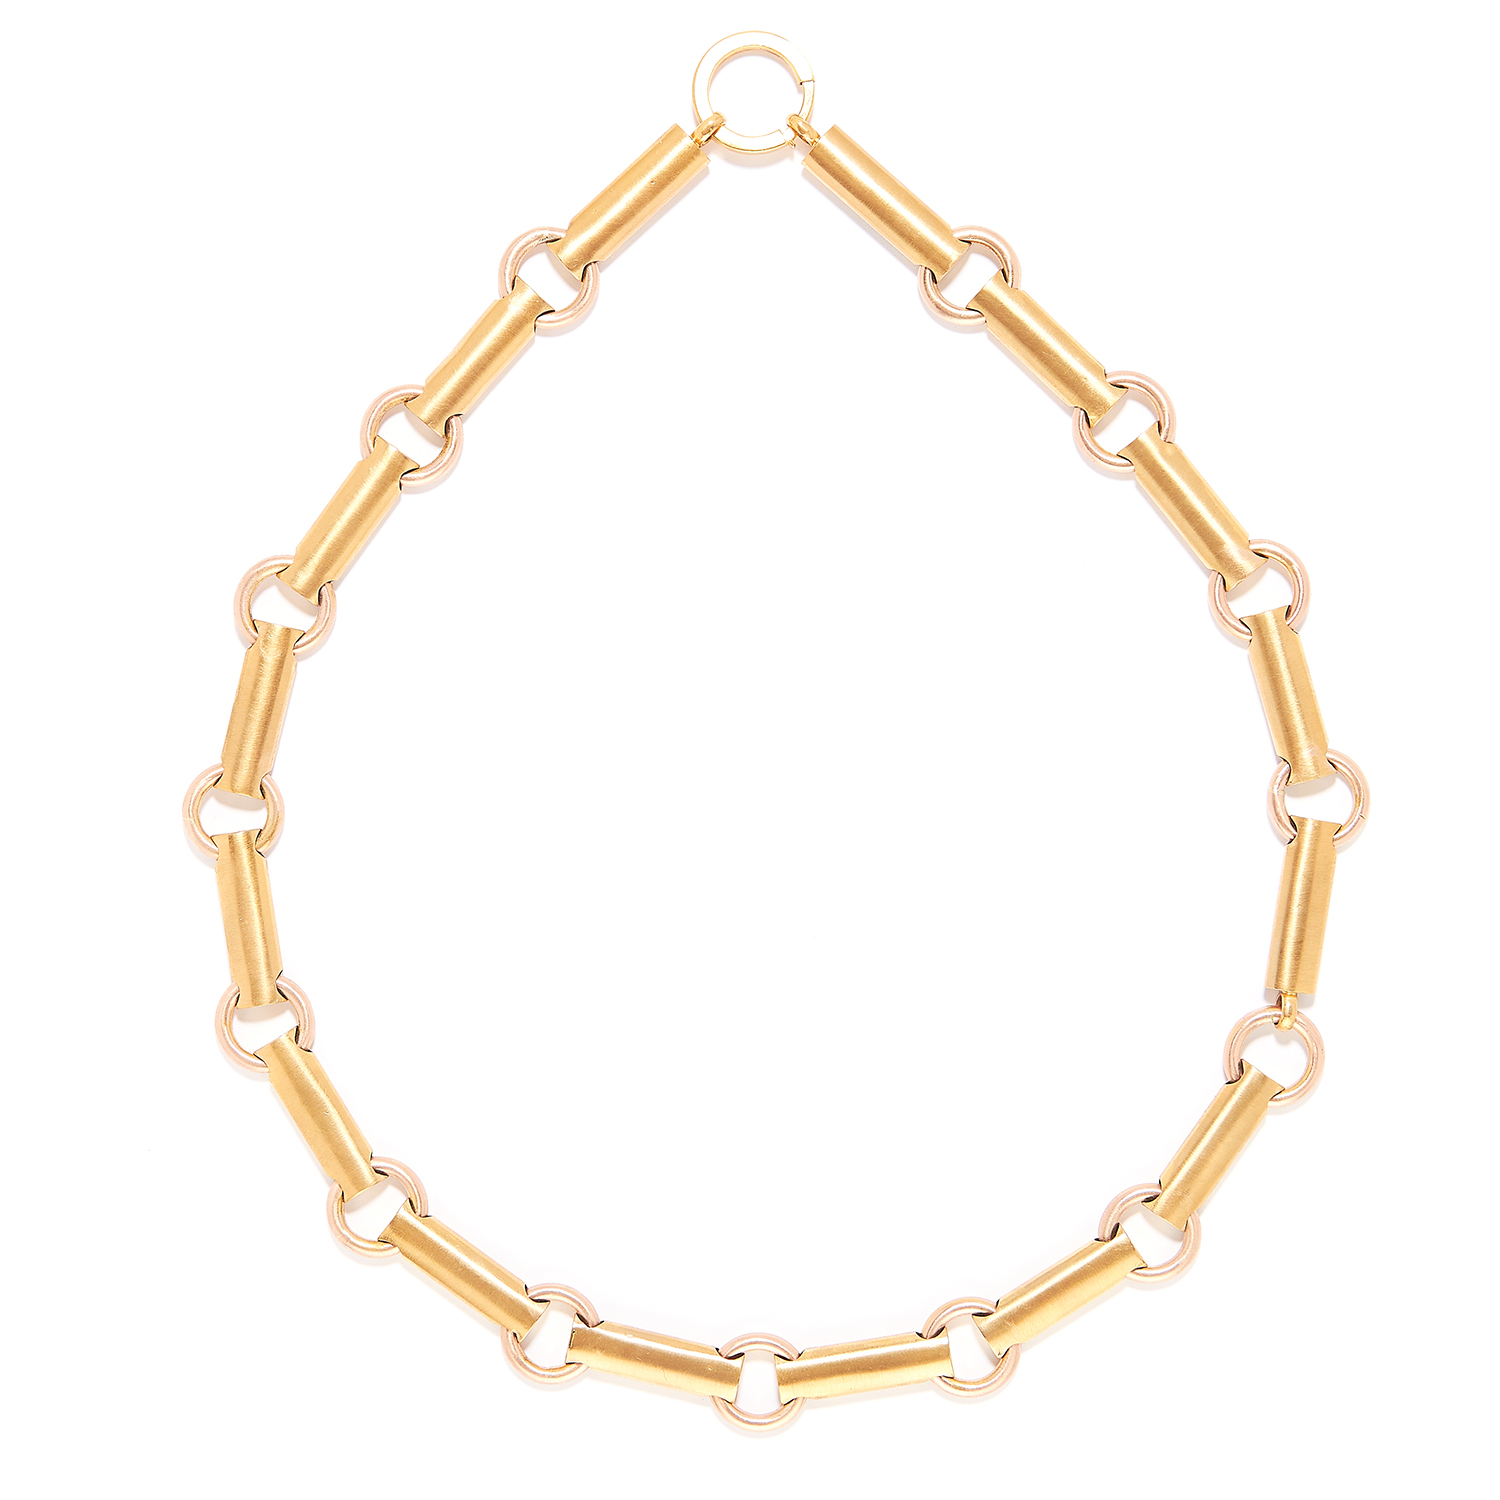 YELLOW GOLD FANCY LINK CHAIN in yellow gold, comprising of alternating circular and baton links,